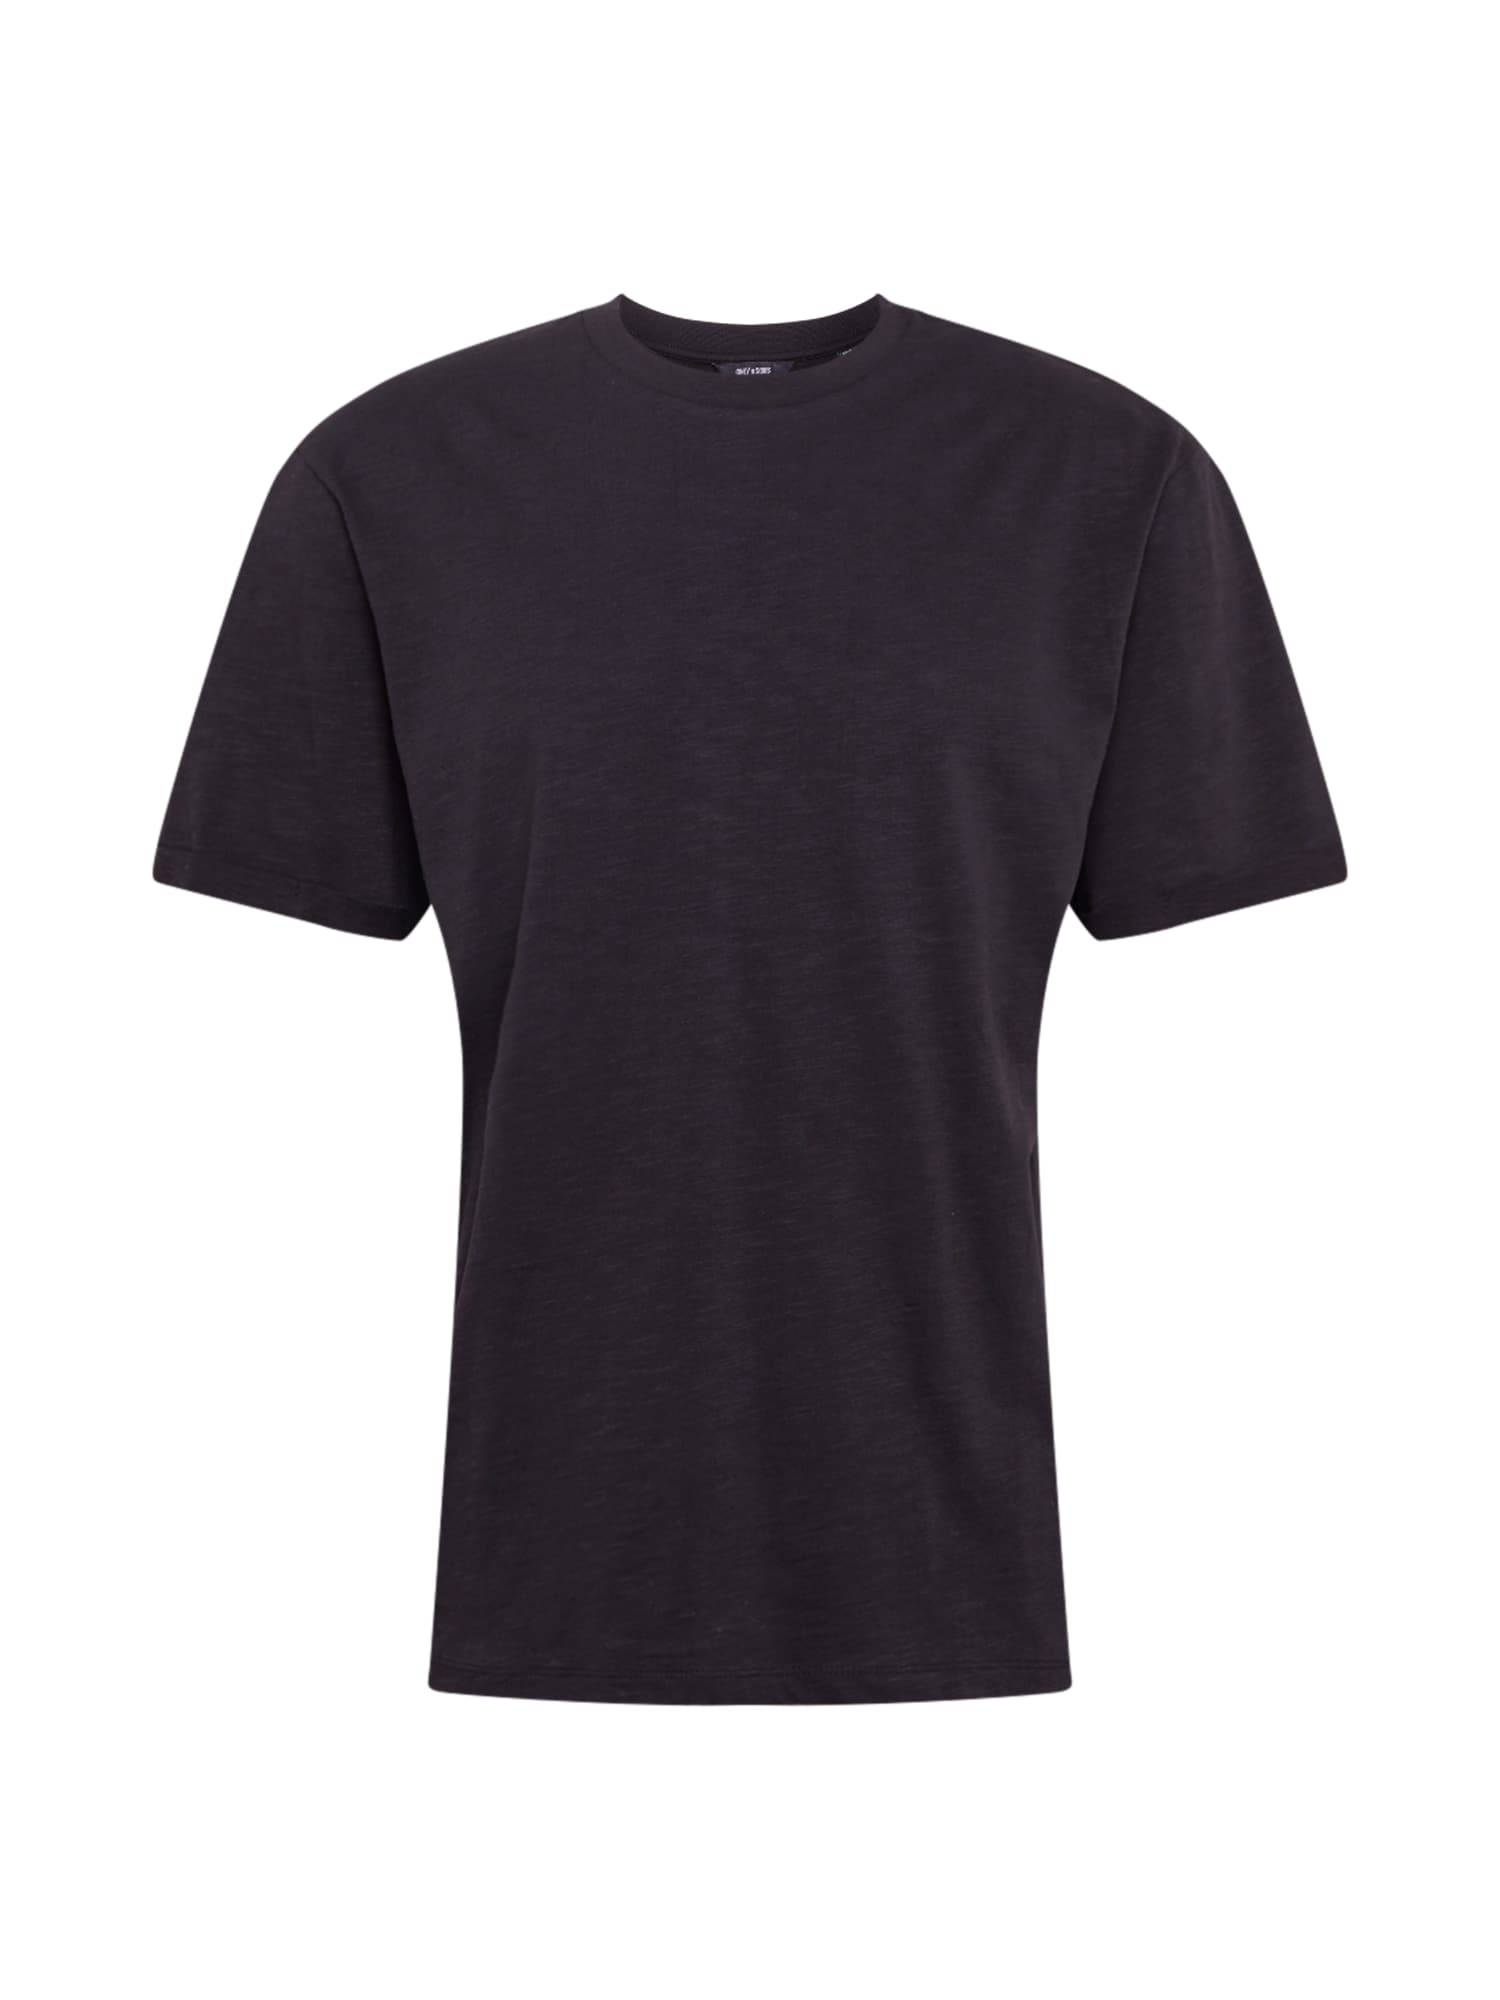 Only & Sons T-Shirt 'DANTE'  - Noir - Taille: XS - male